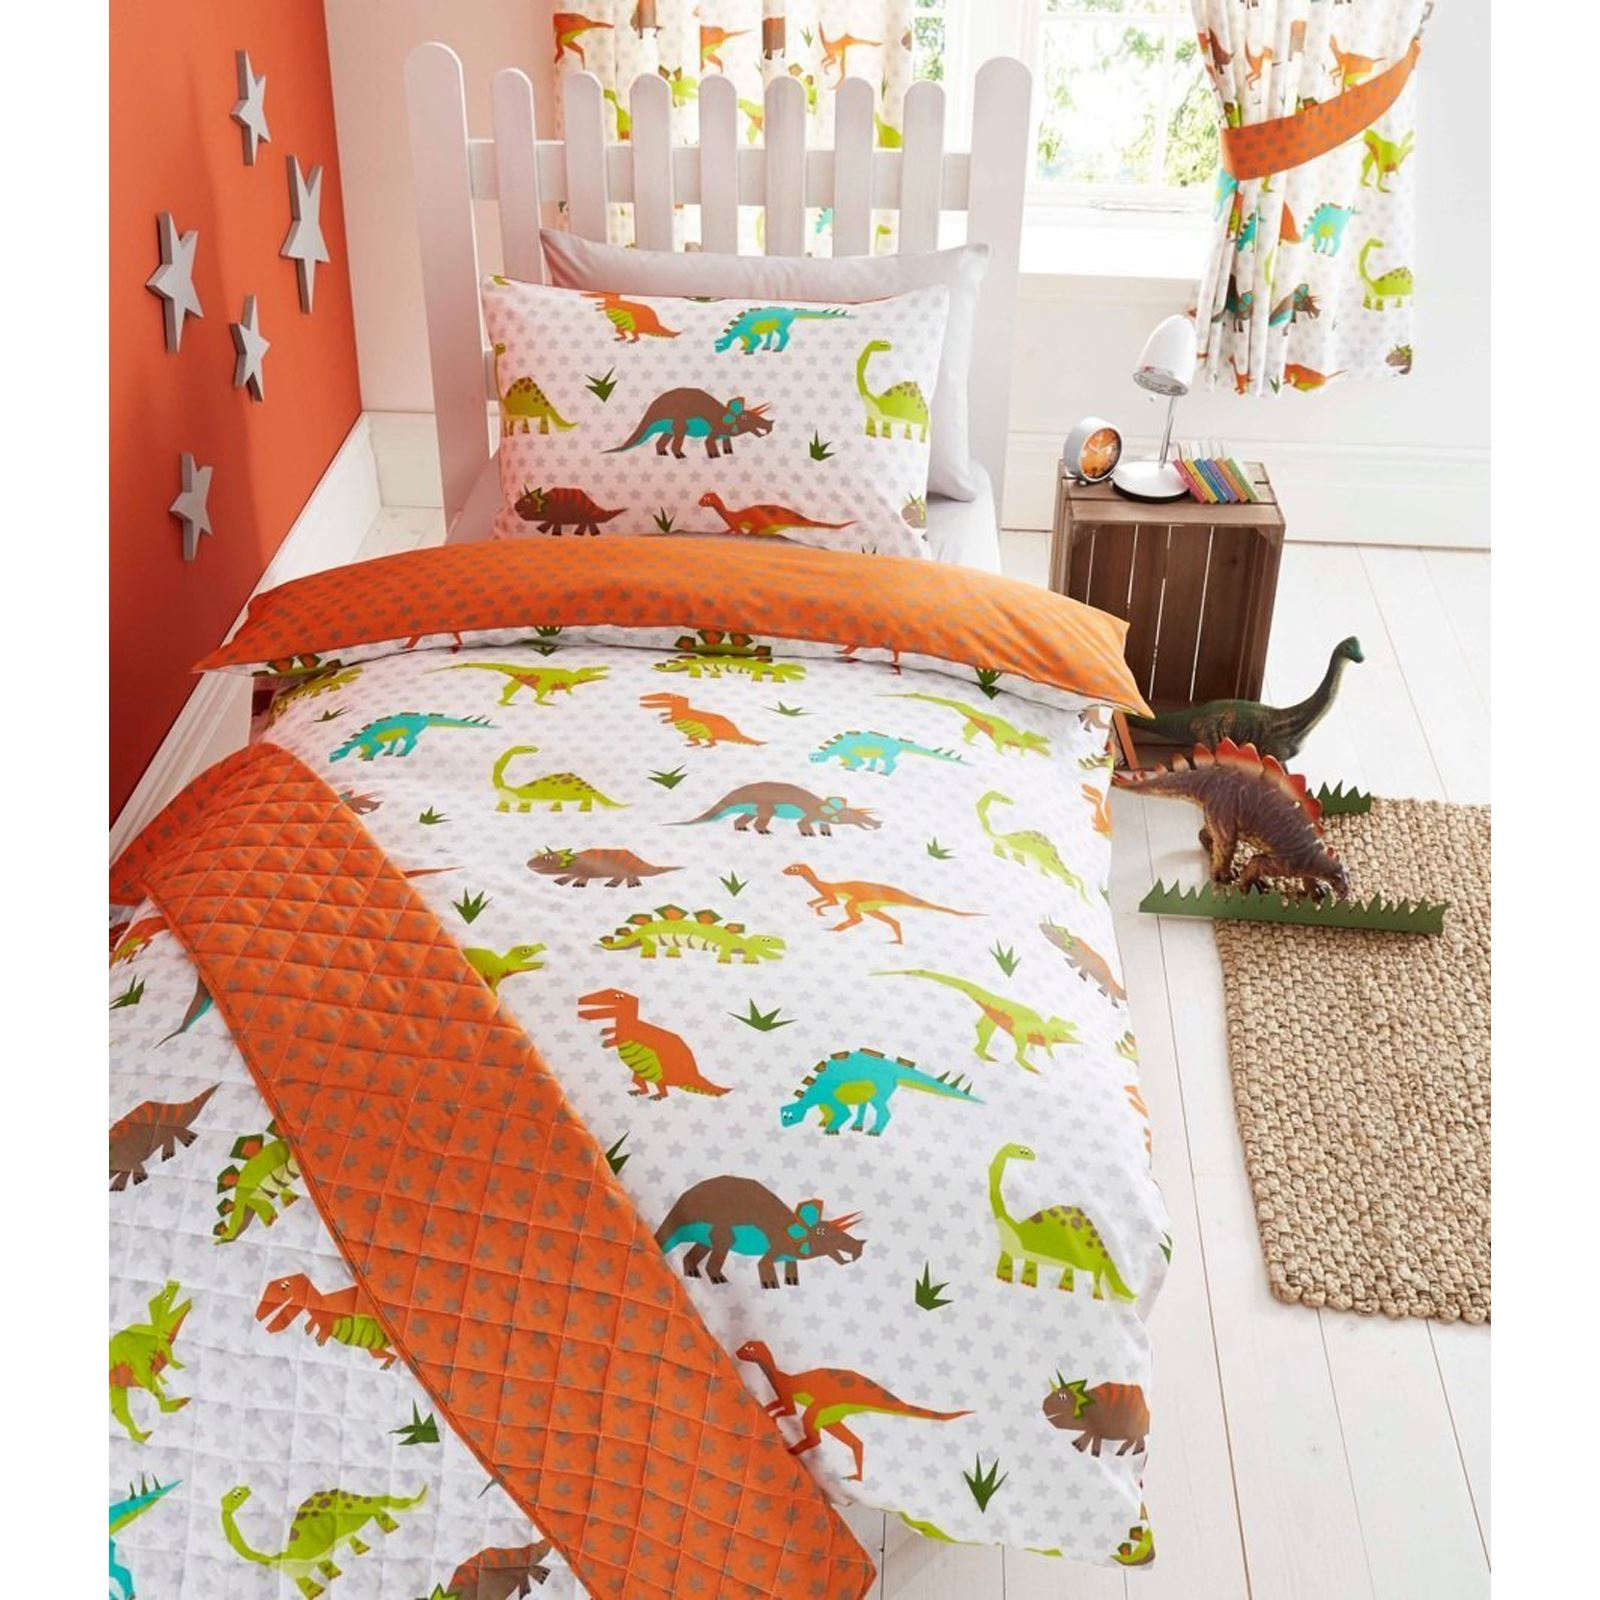 DINOSAUR DESIGN SINGLE DUVET COVER SETS BOYS BEDDING BEDROOM